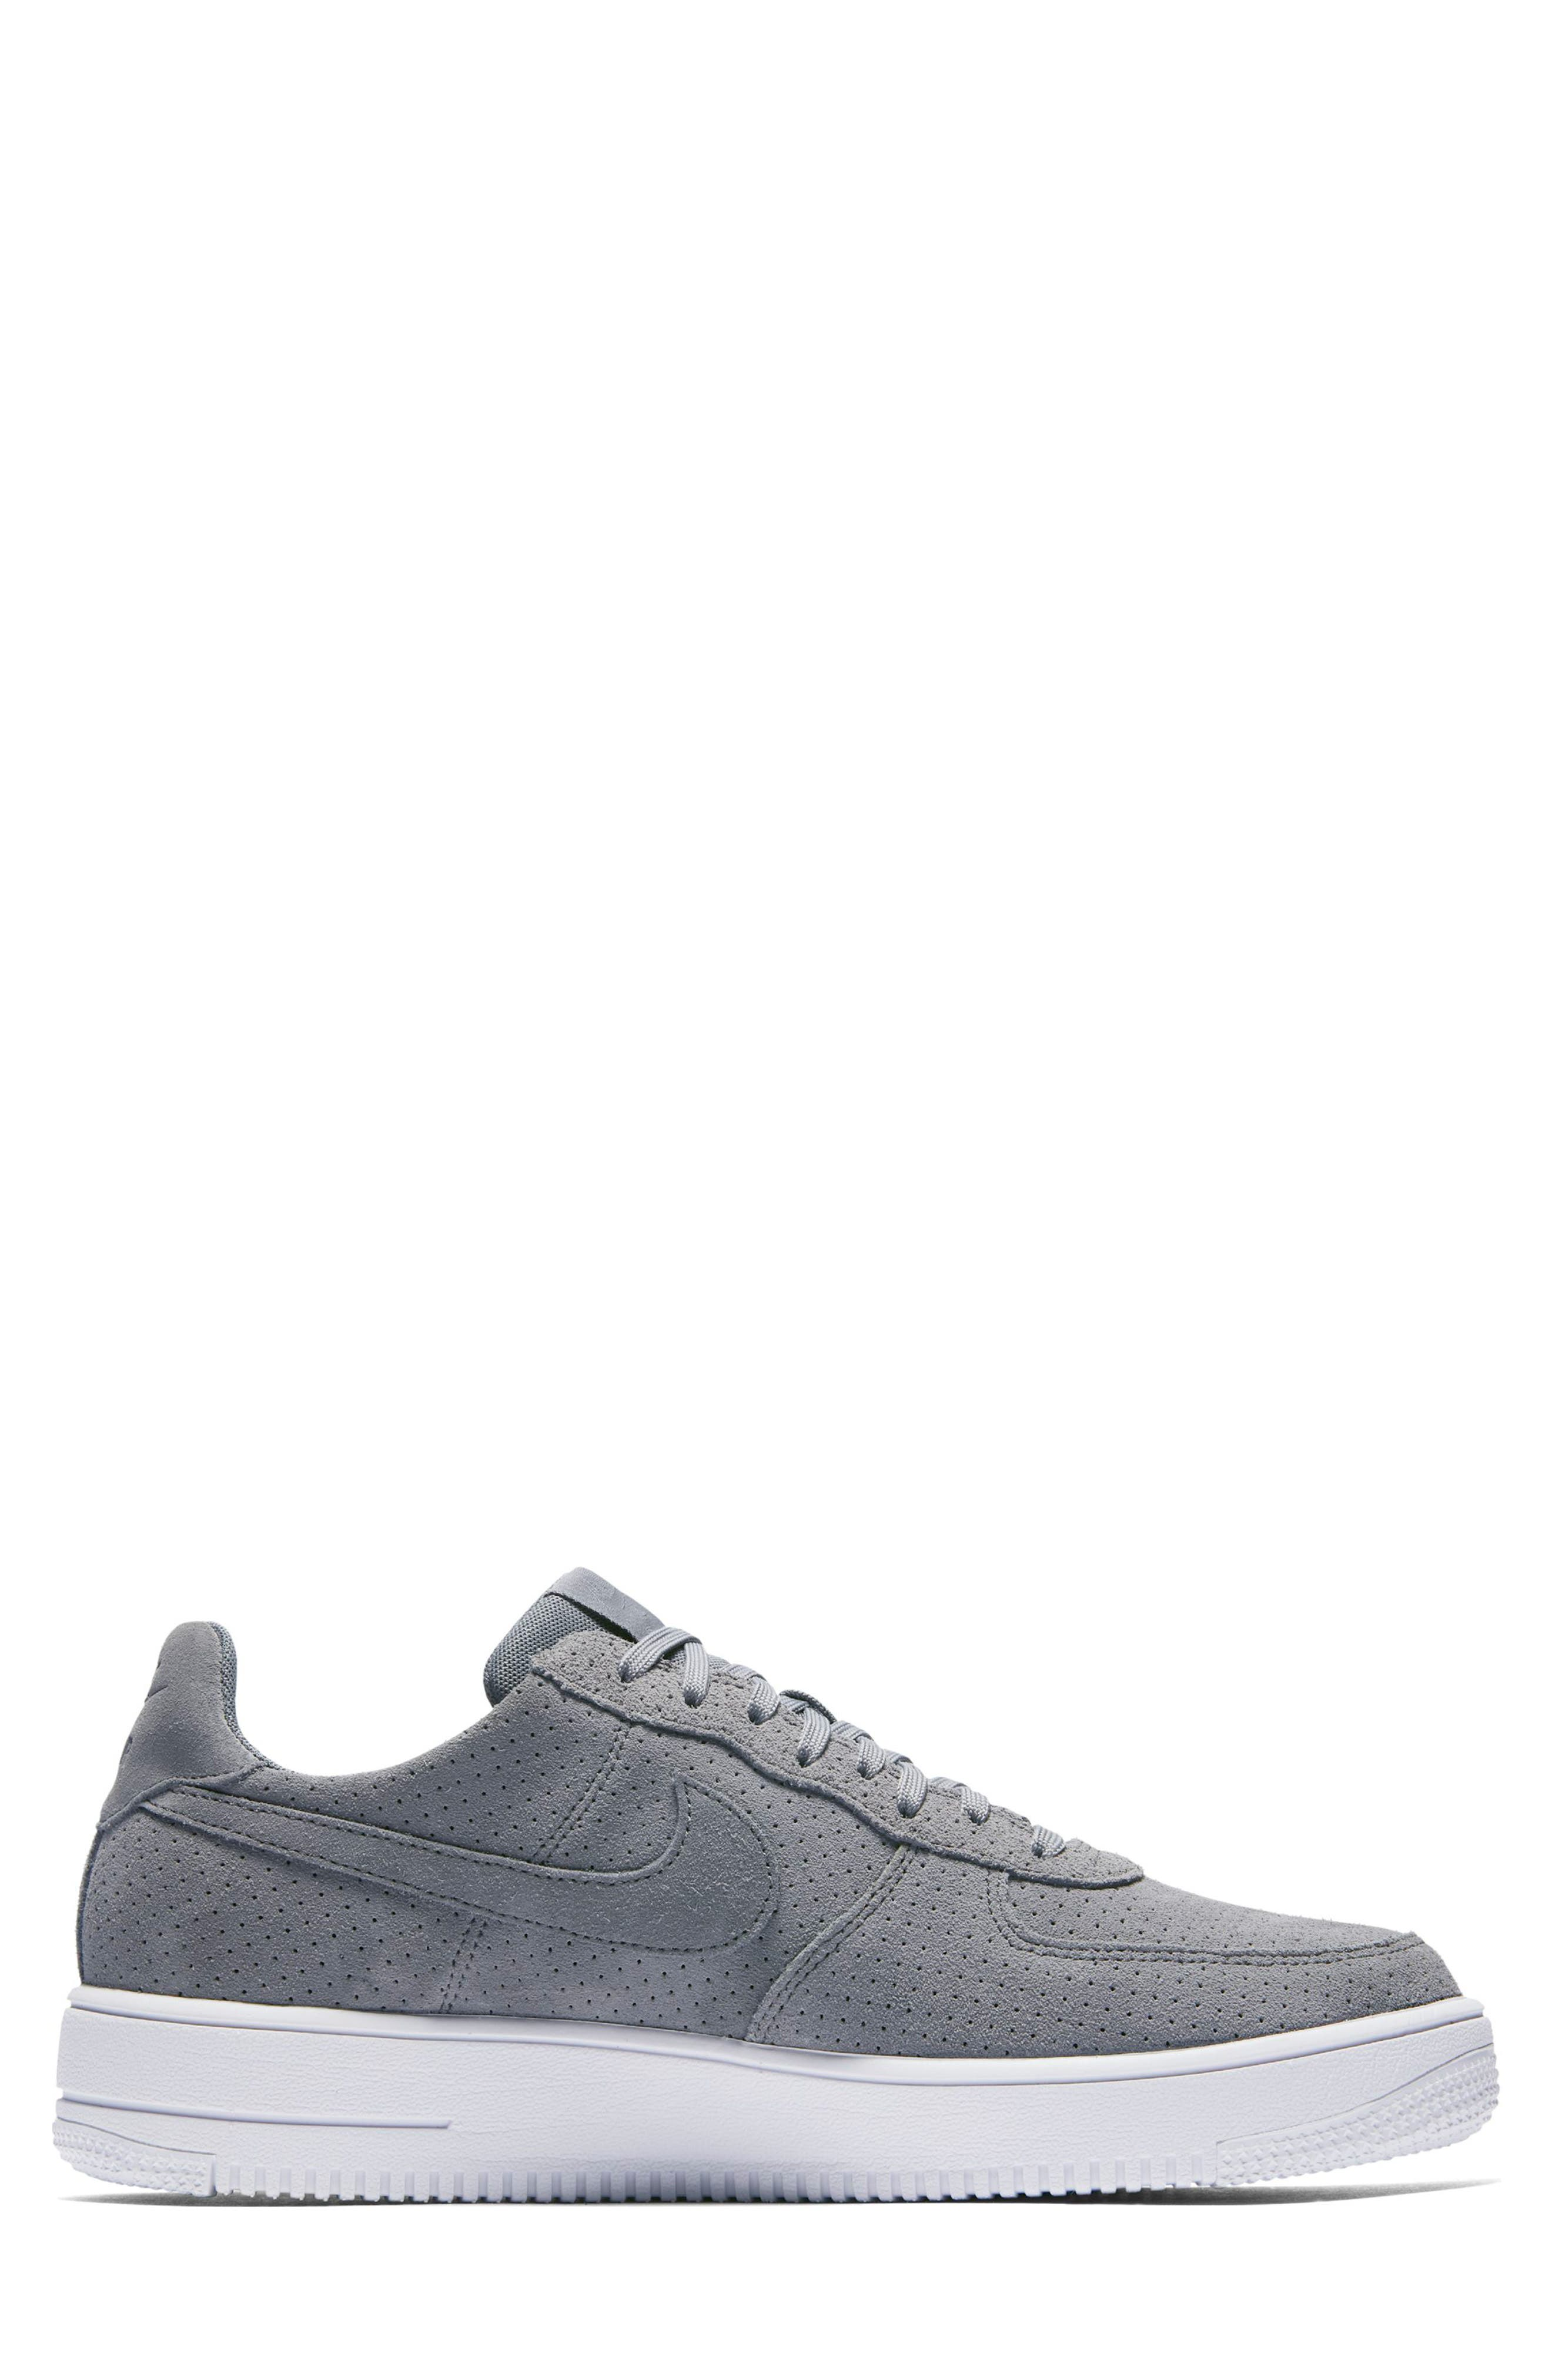 Air Force 1 Ultraforce Sneaker,                             Alternate thumbnail 2, color,                             Cool Grey/ White